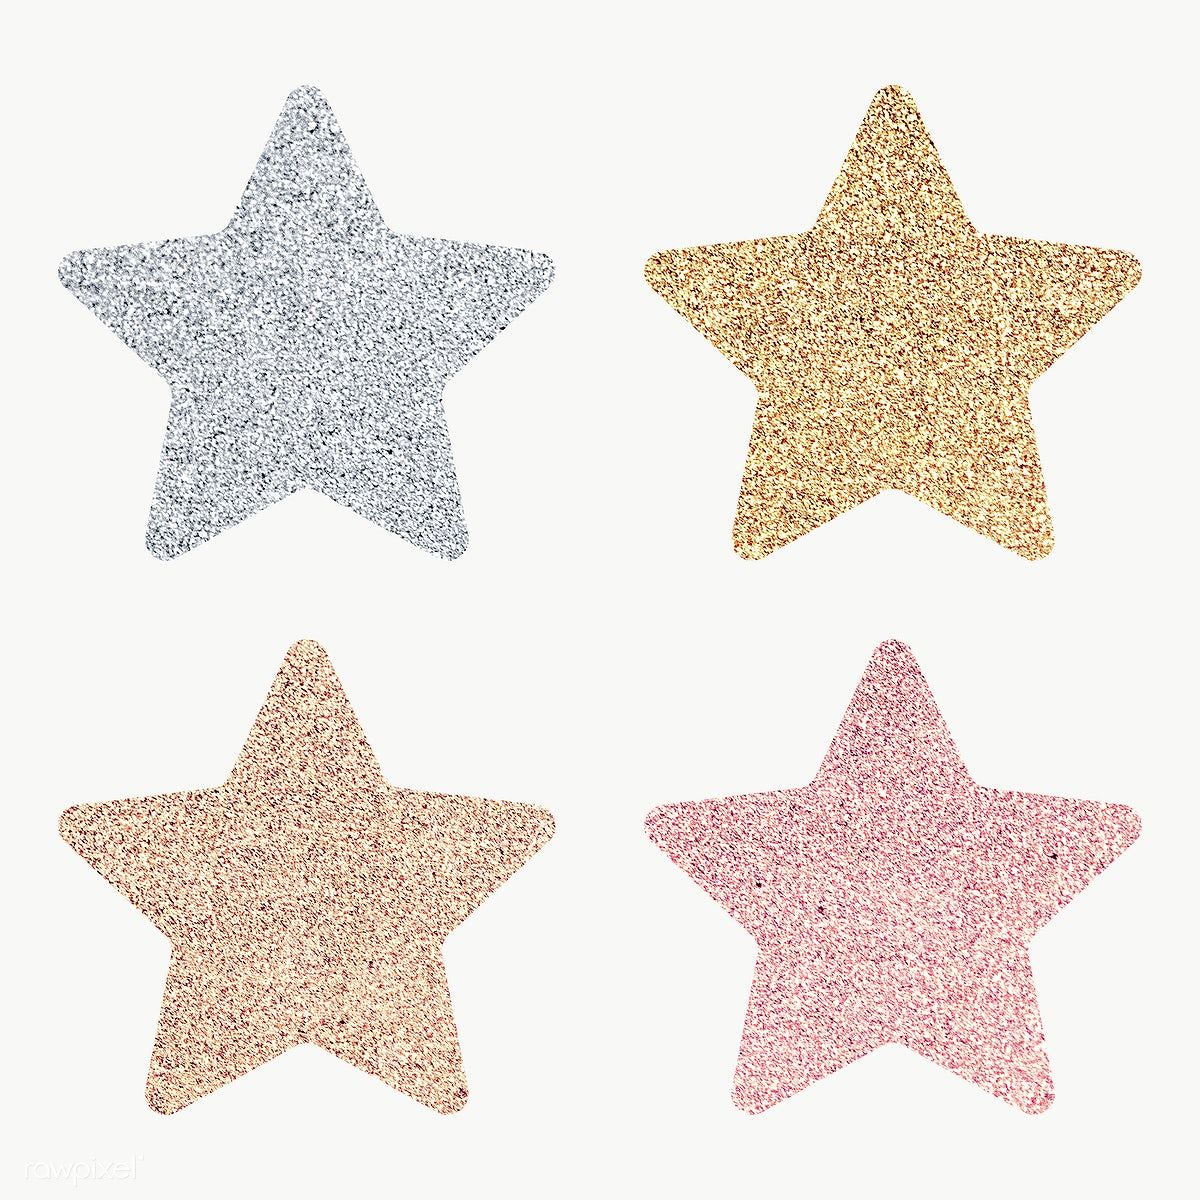 Glitter Star Sticker Set Transparent Png Free Image By Rawpixel Com Ningzk V Star Stickers Sticker Set Glitter Stickers